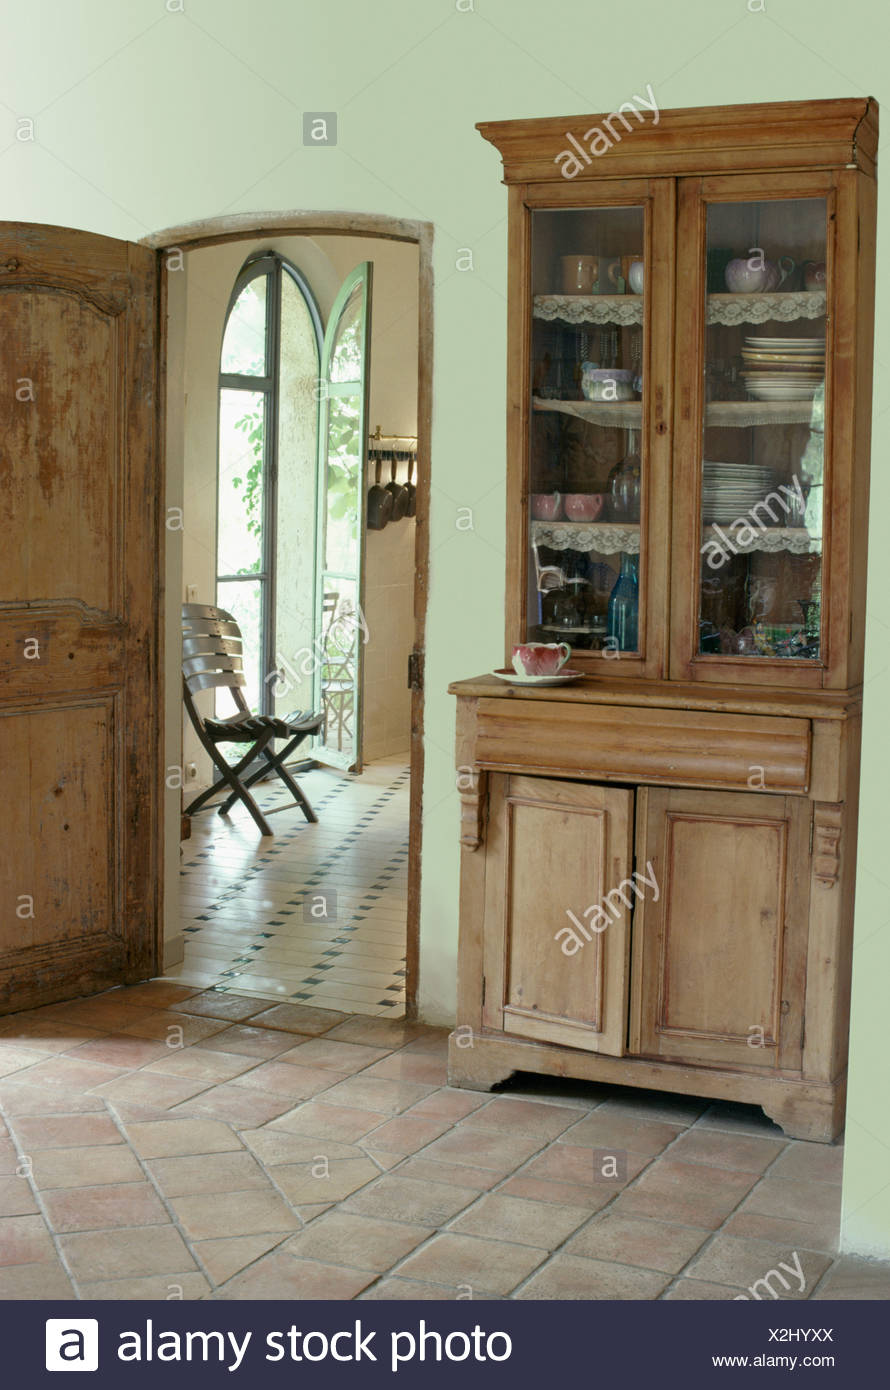 https www alamy com antique glass front dresser in french country hall with terracotta floor tiles image276990306 html